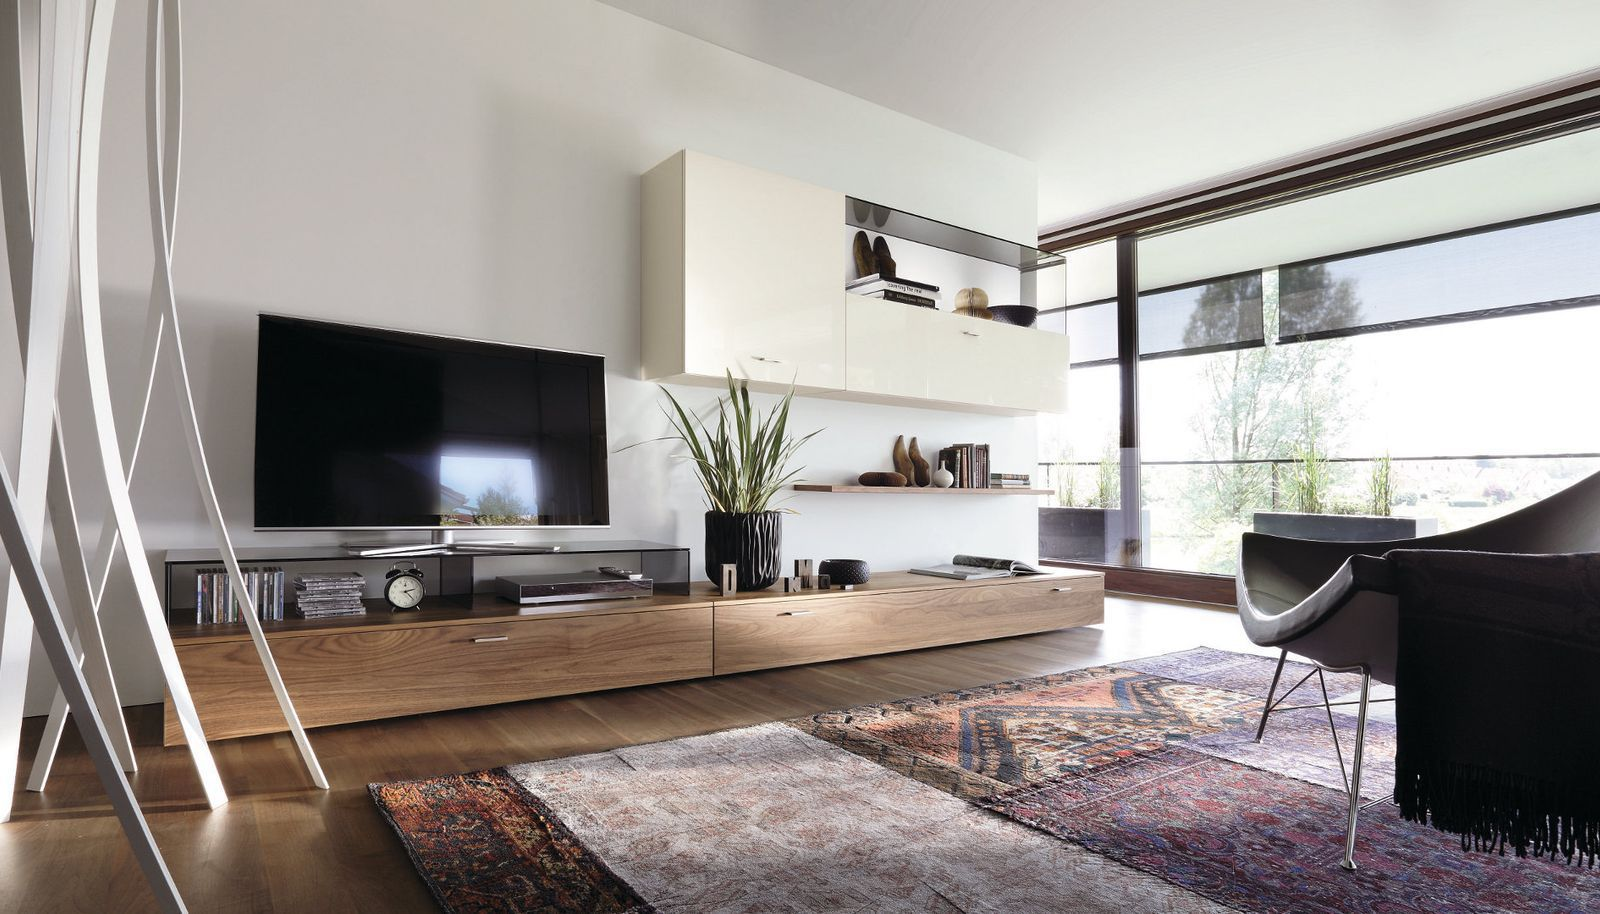 Schön Hülsta Now Lowboard Ideen Von Contemporary Tv Wall Unit - Now! By